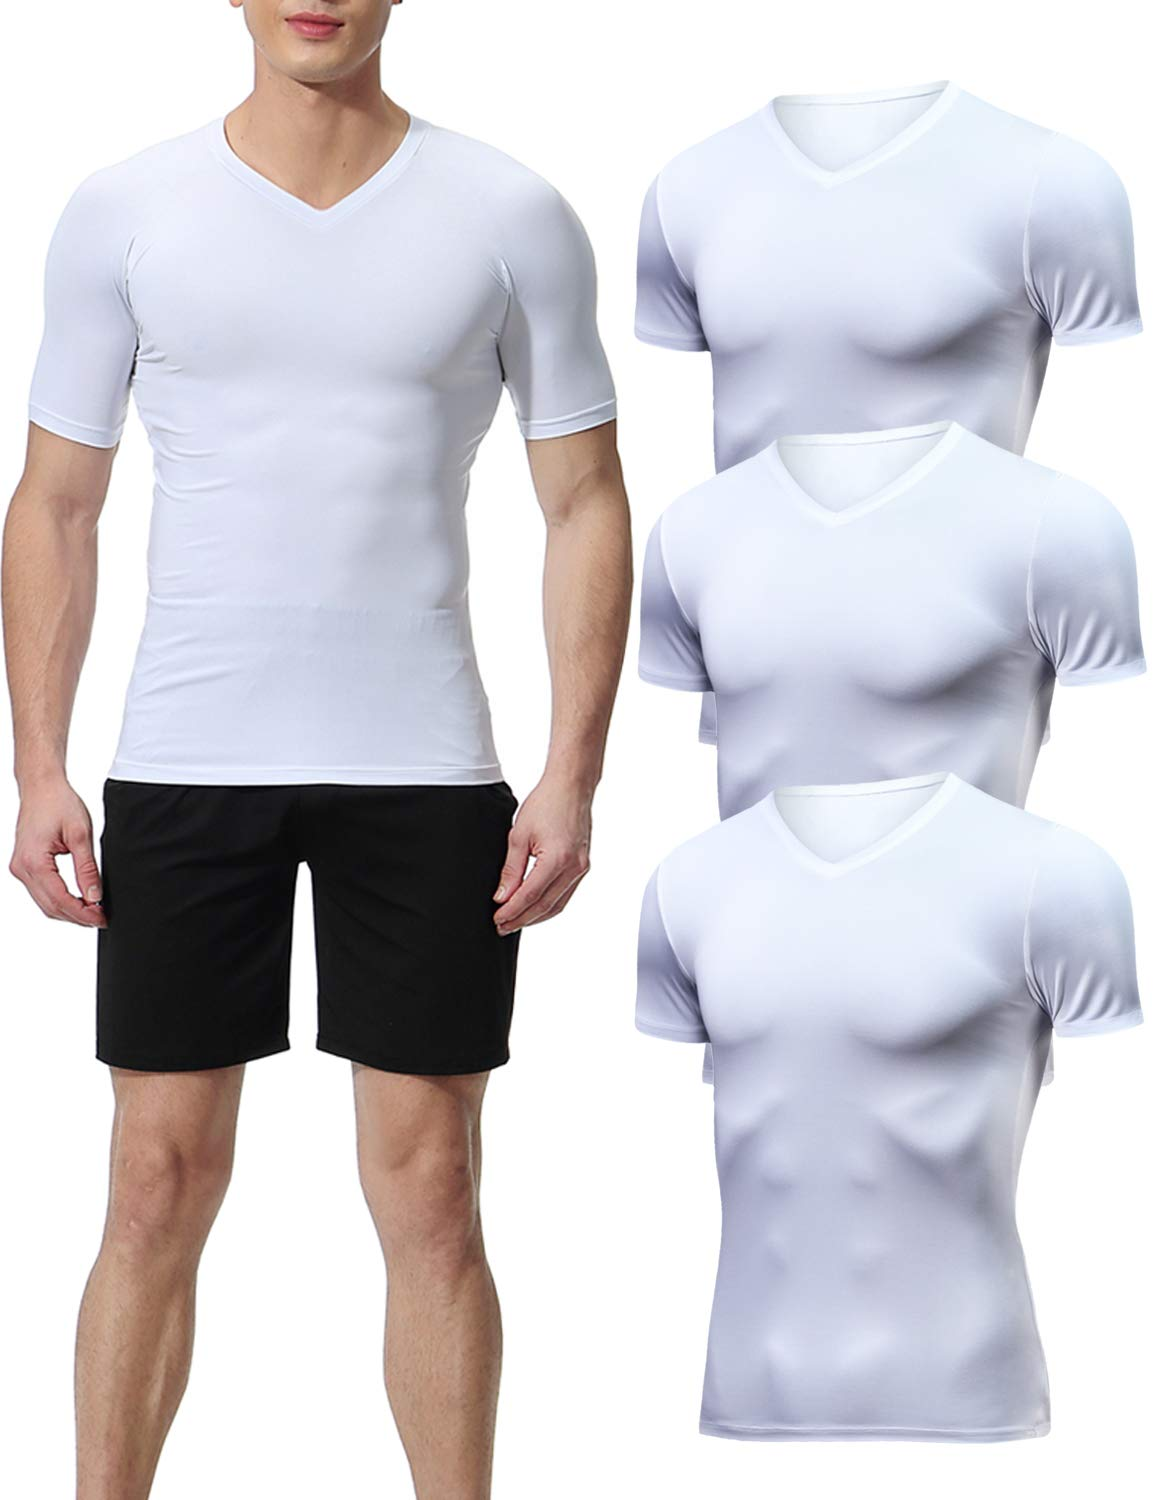 Lavento Men's Compression Shirts Cool Dry Short-Sleeve Workout Undershirts (3 Pack-V Neck White,Large) by Lavento